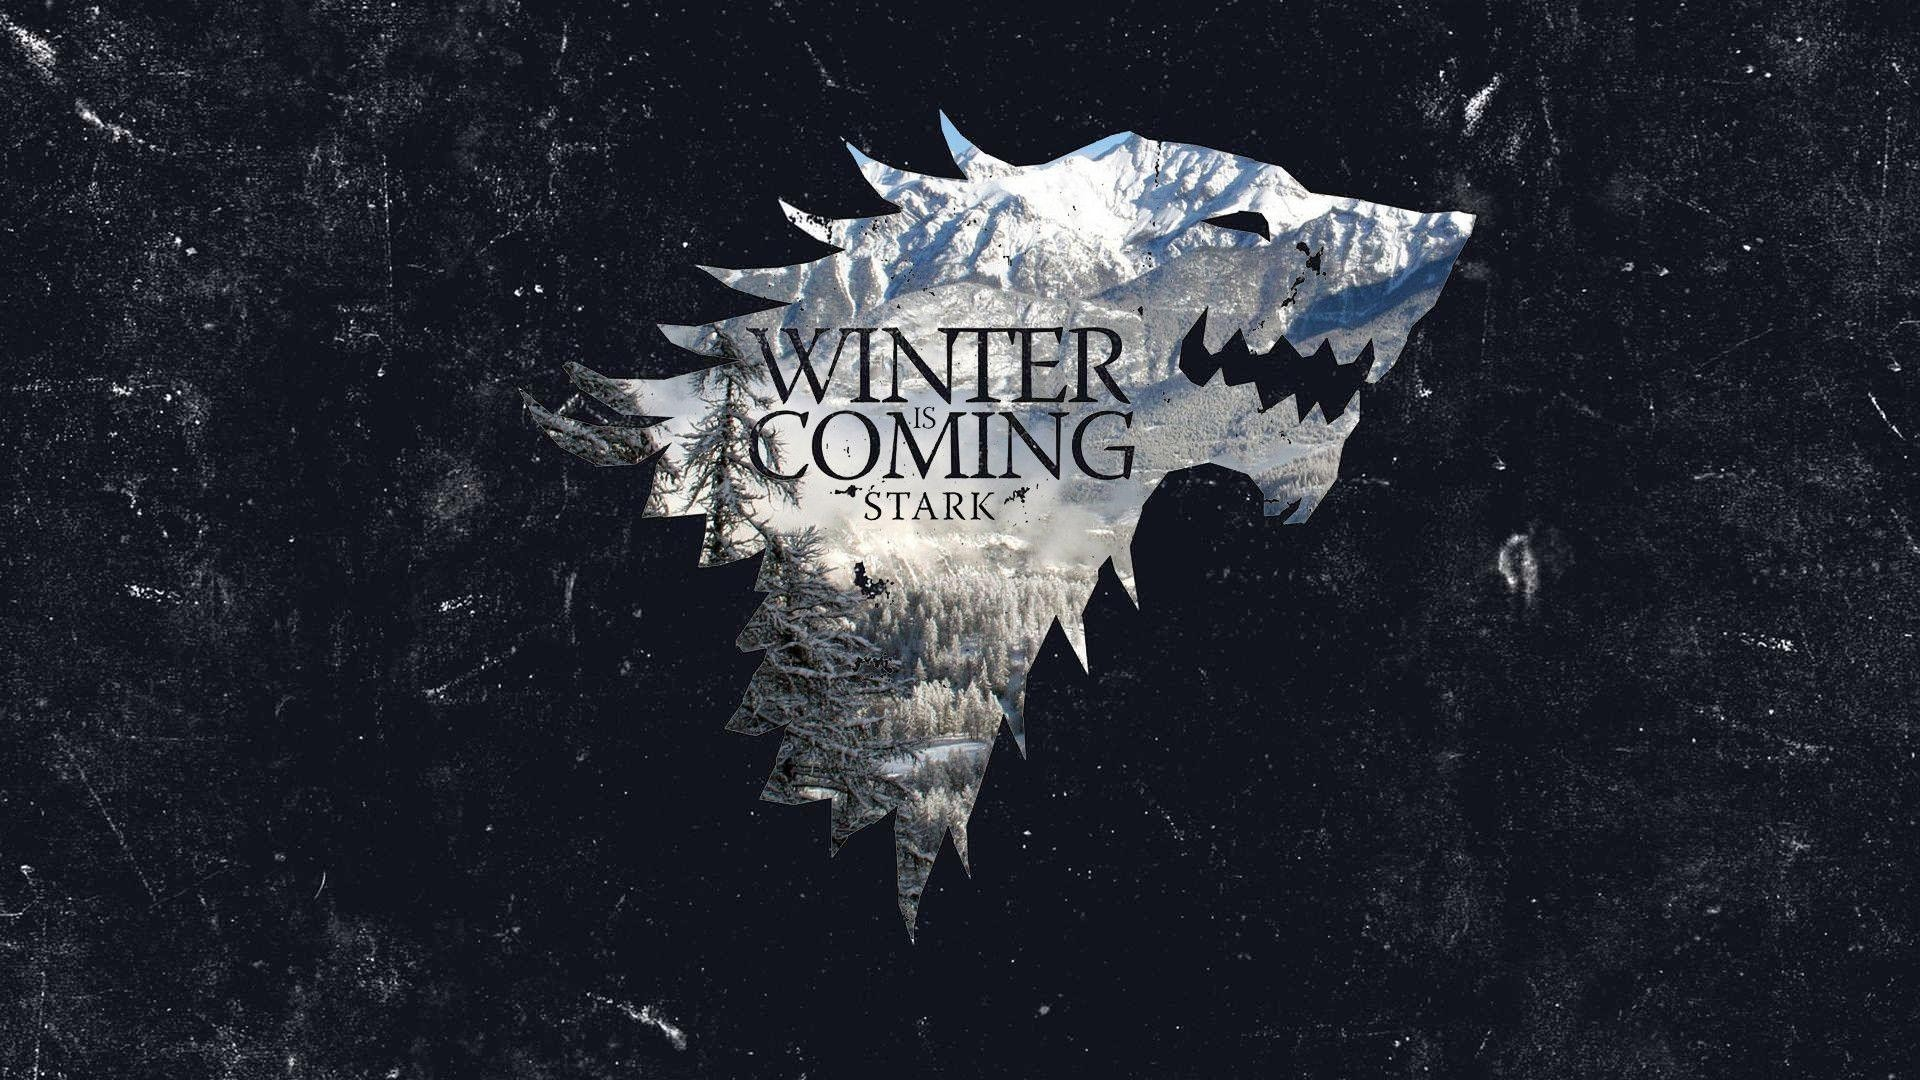 Res: 1920x1080, winter is coming wallpaper  - house stark wallpaper